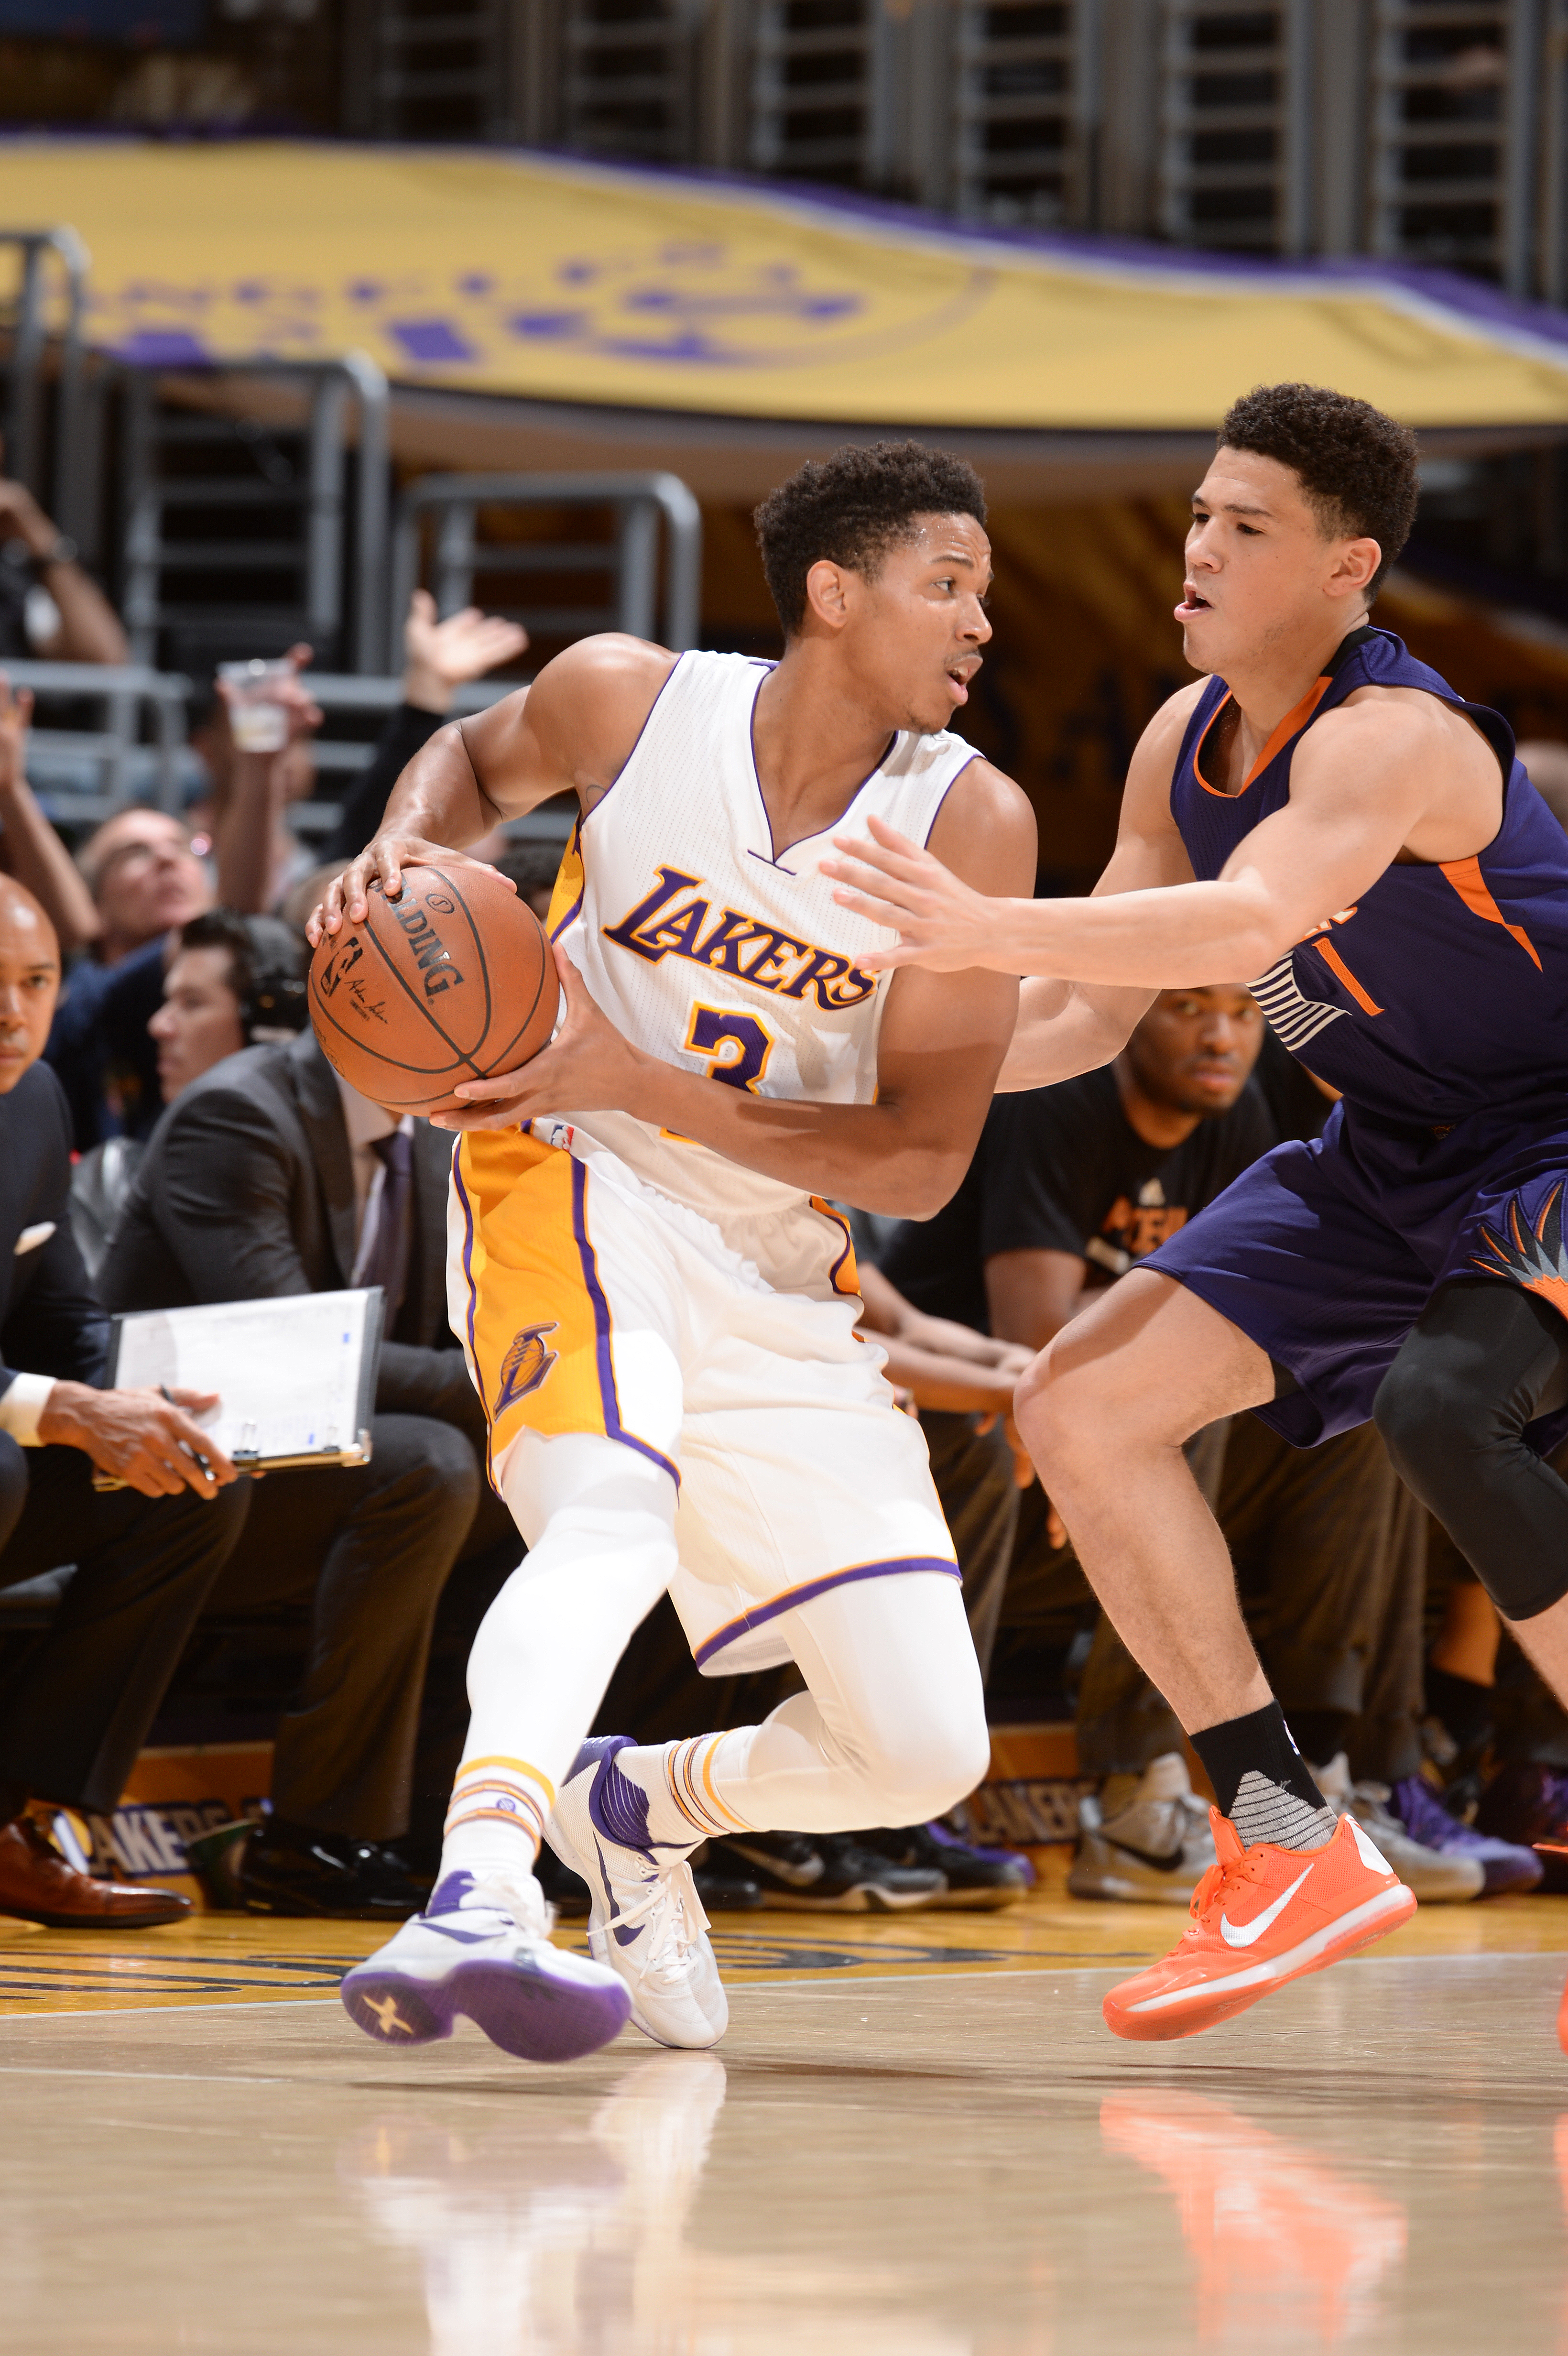 LOS ANGELES, CA - JANUARY 3: Anthony Brown #3 of the Los Angeles Lakers handles the ball during the game against the Phoenix Suns on January 3, 2016 at STAPLES Center in Los Angeles, California. (Photo by Andrew D. Bernstein/NBAE via Getty Images)